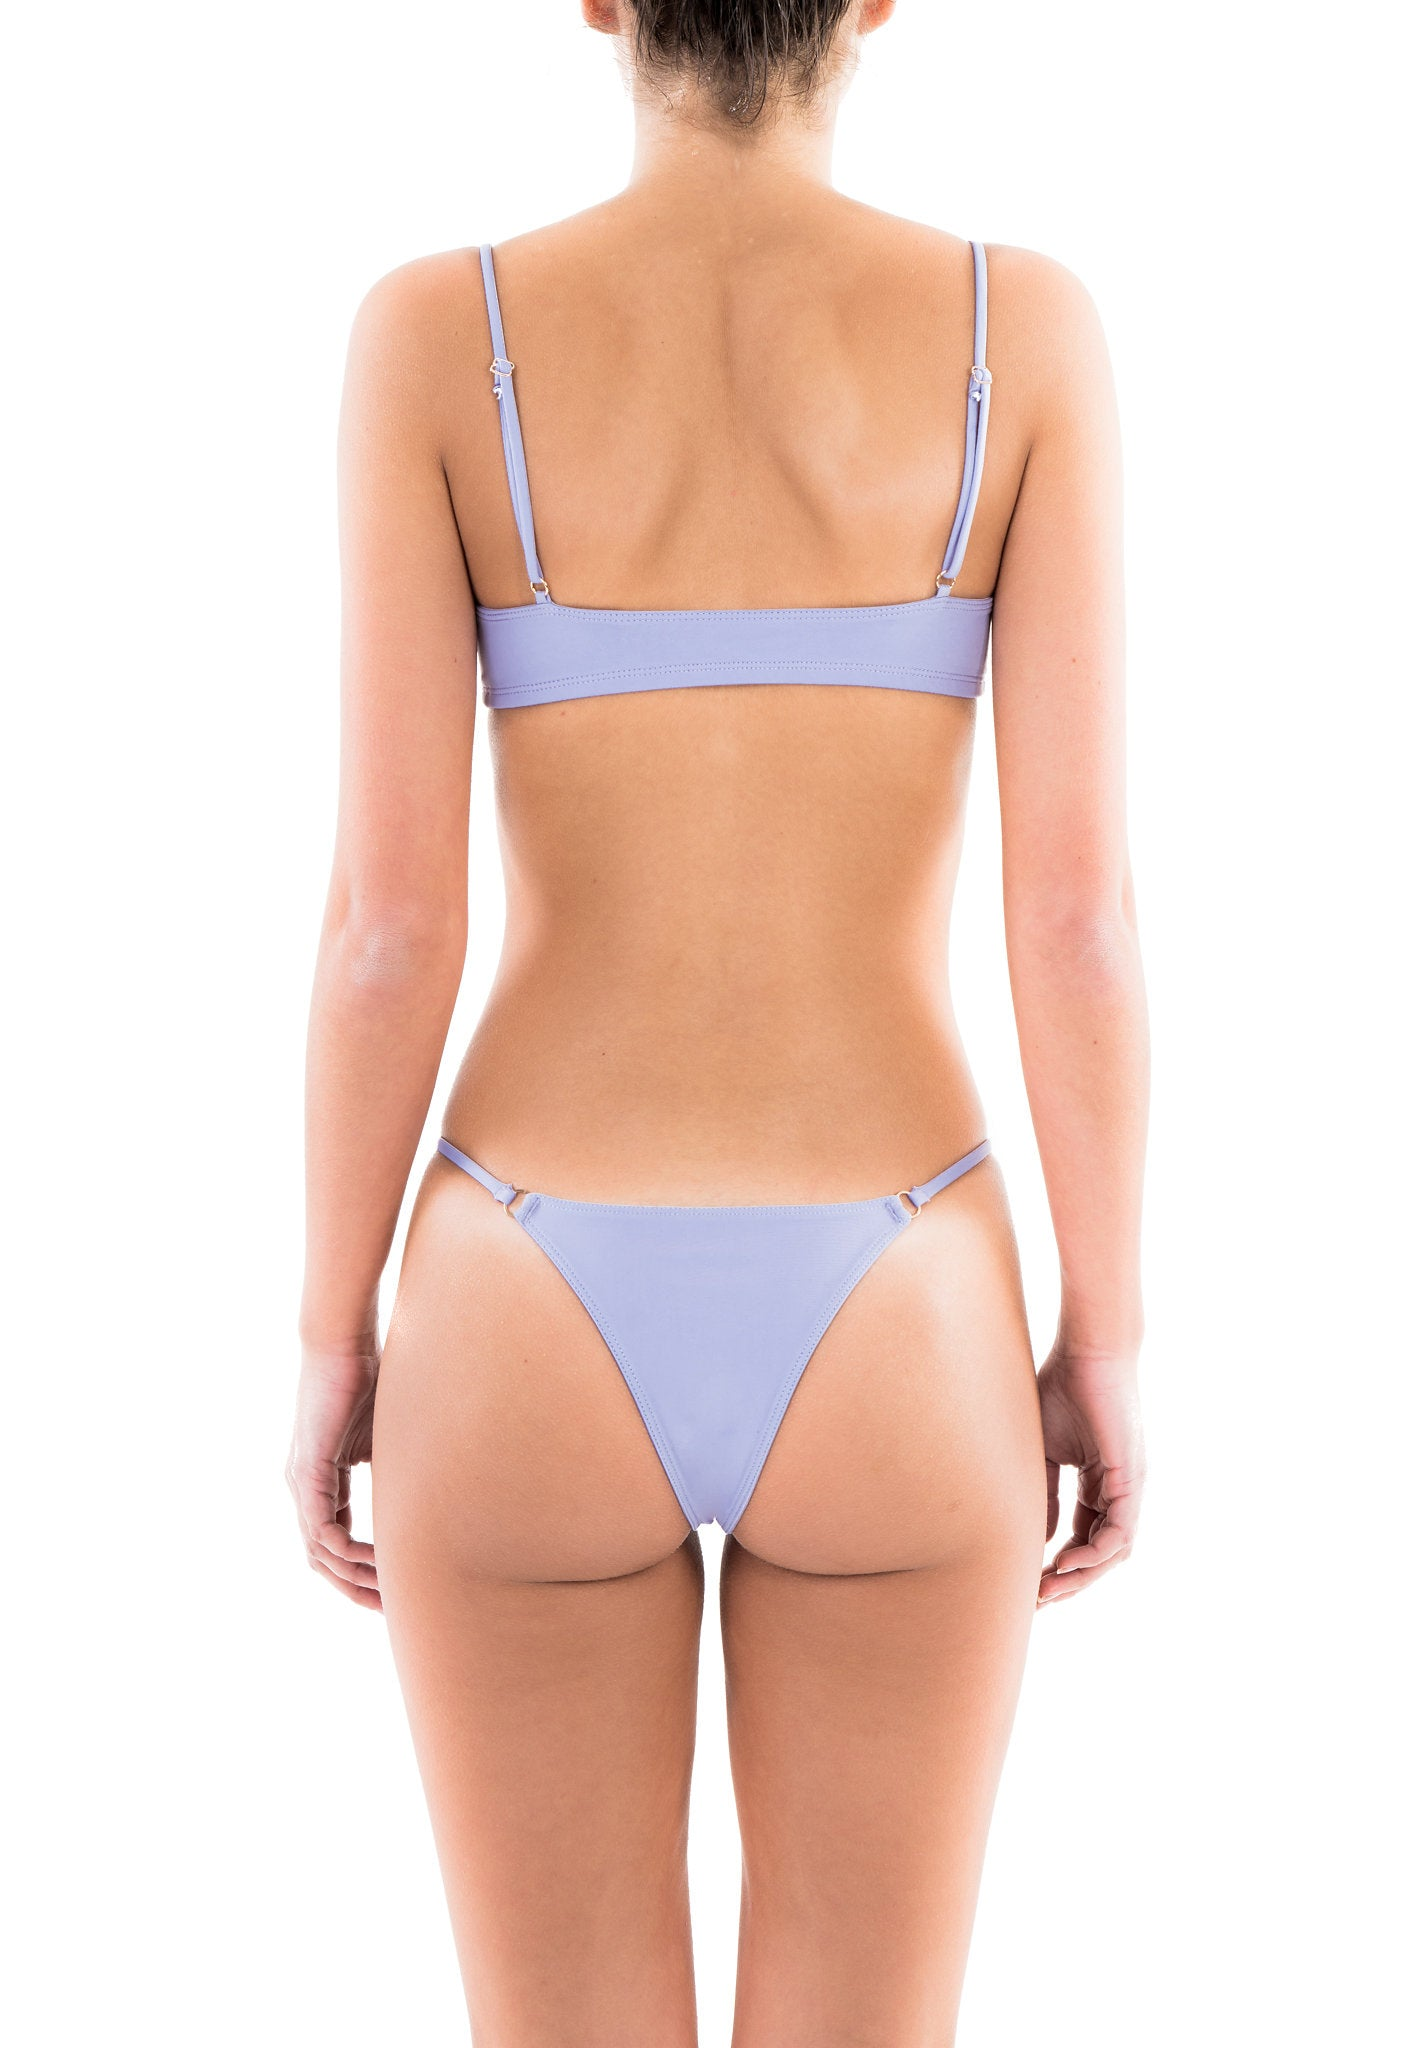 RINGLEADER bottoms – lavender